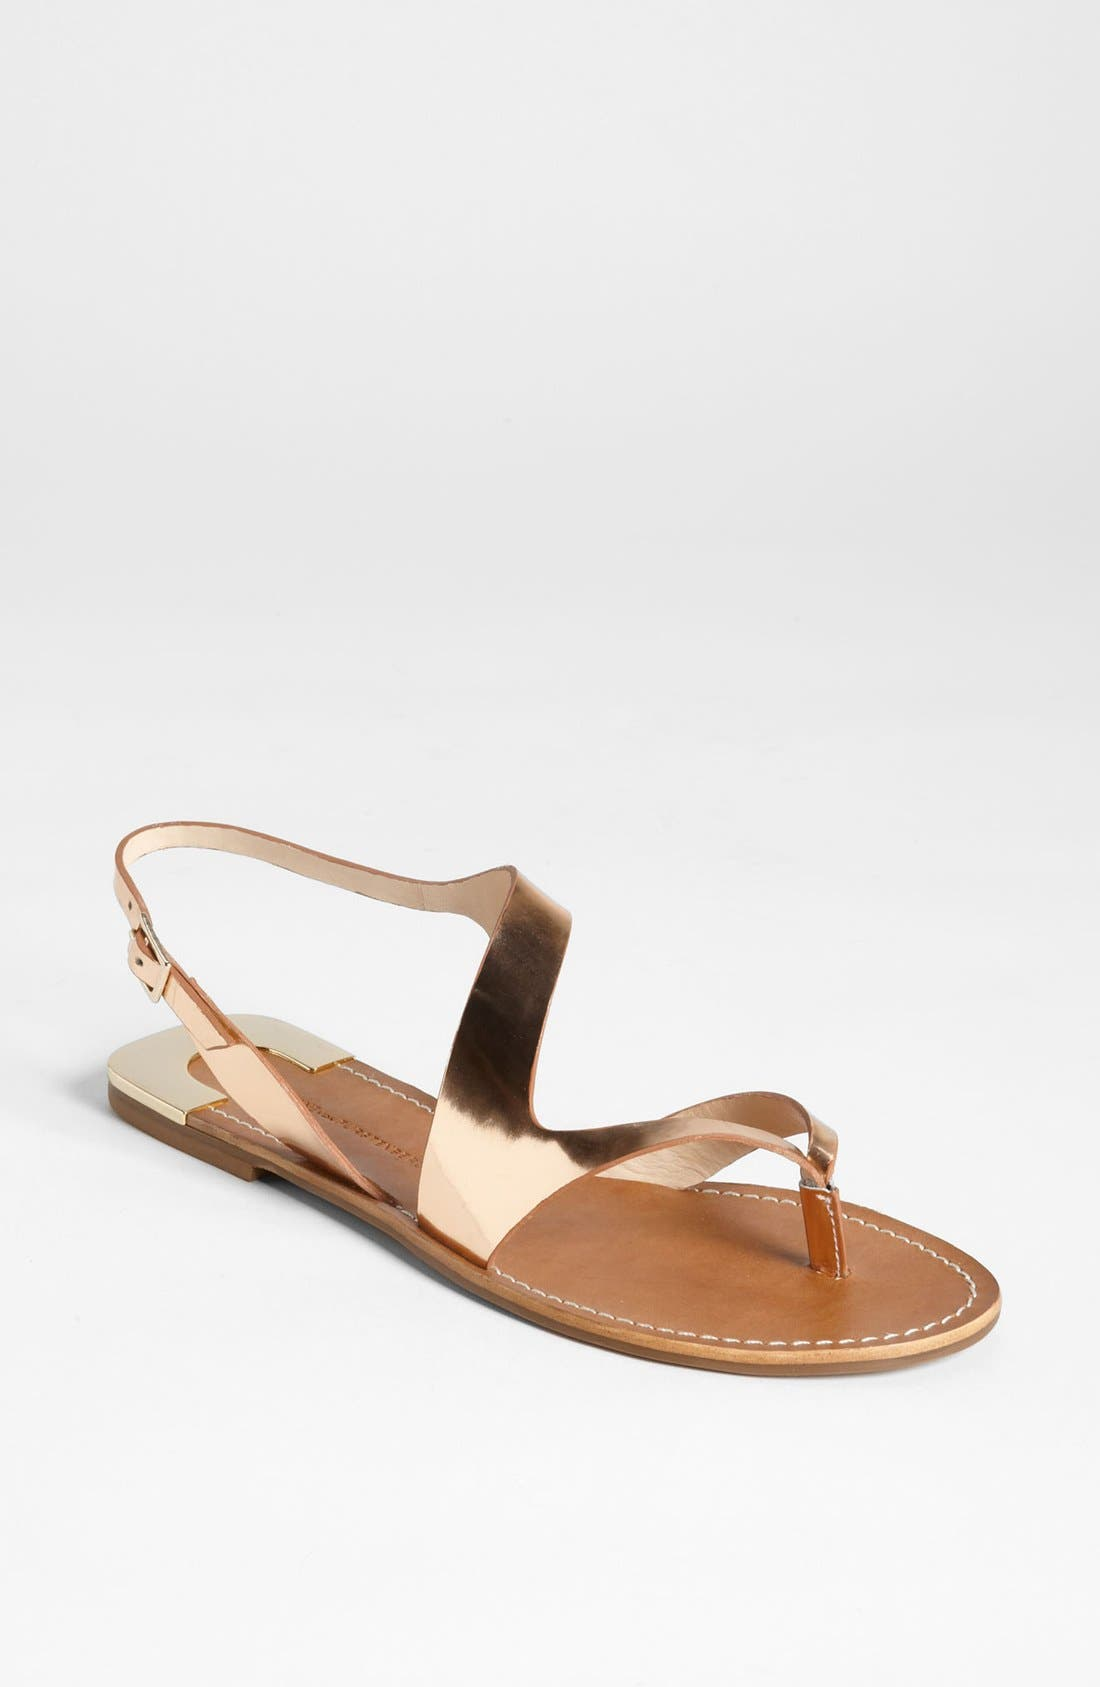 Alternate Image 1 Selected - Diane von Furstenberg 'Daphne' Sandal (Online Only)